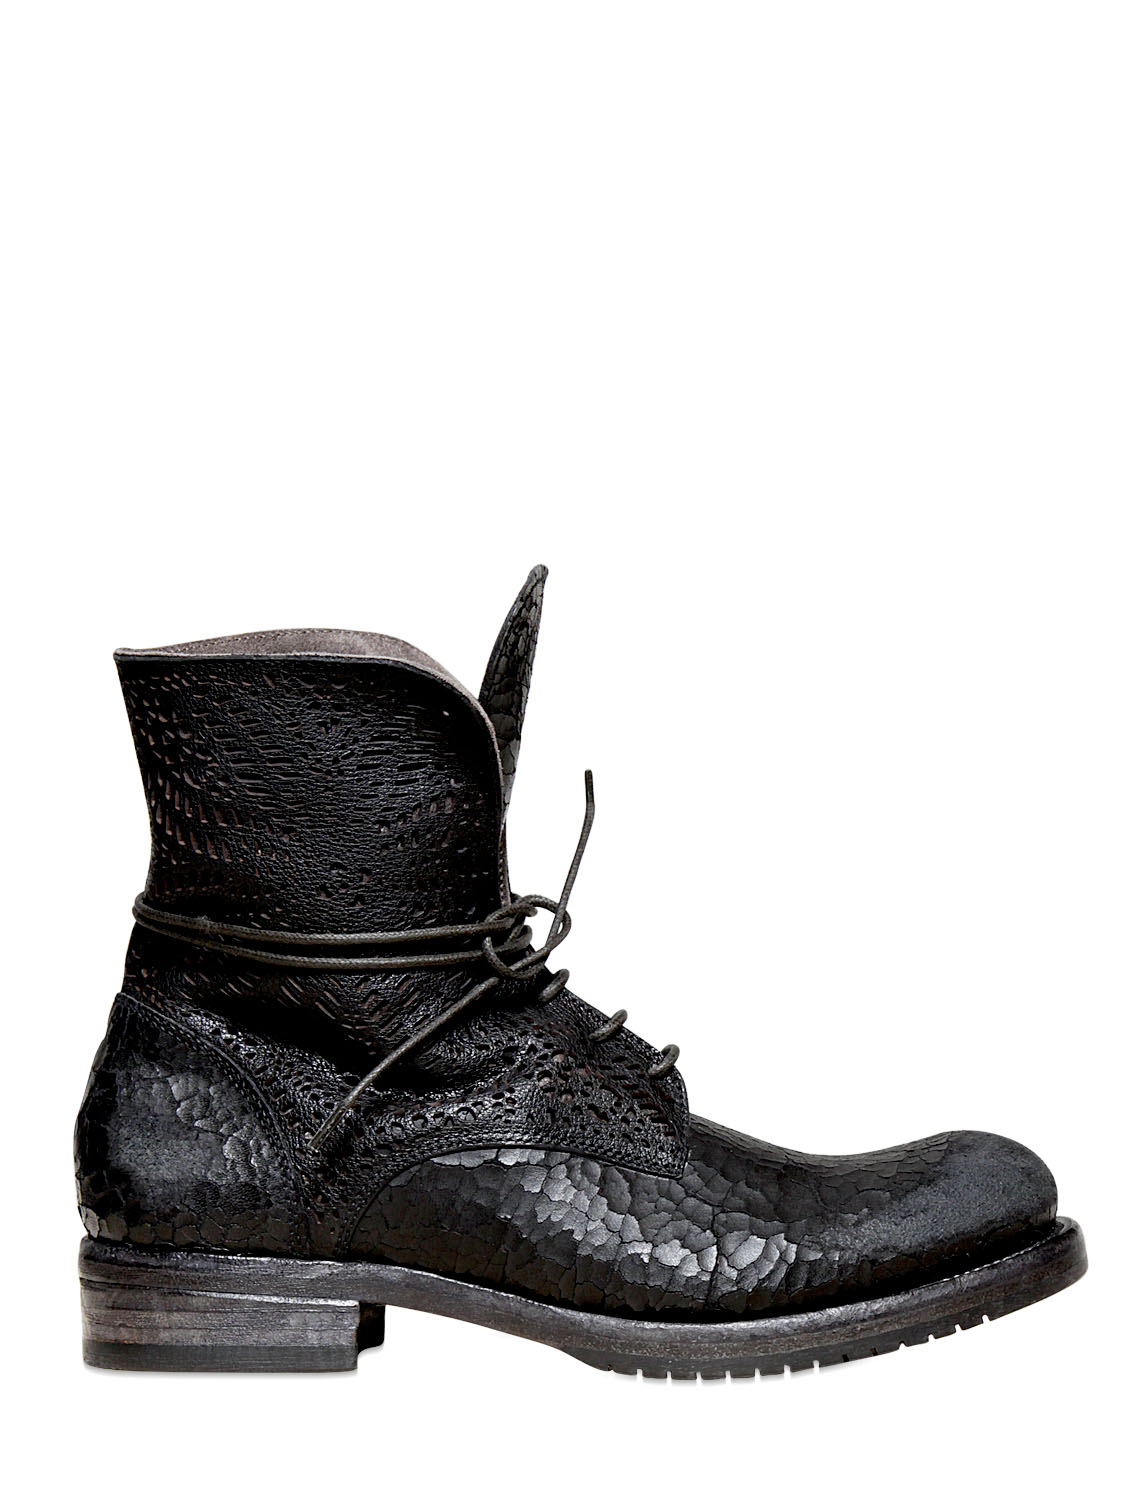 Lyst Ink 20mm Lasered Leather Lace Up Boots In Black